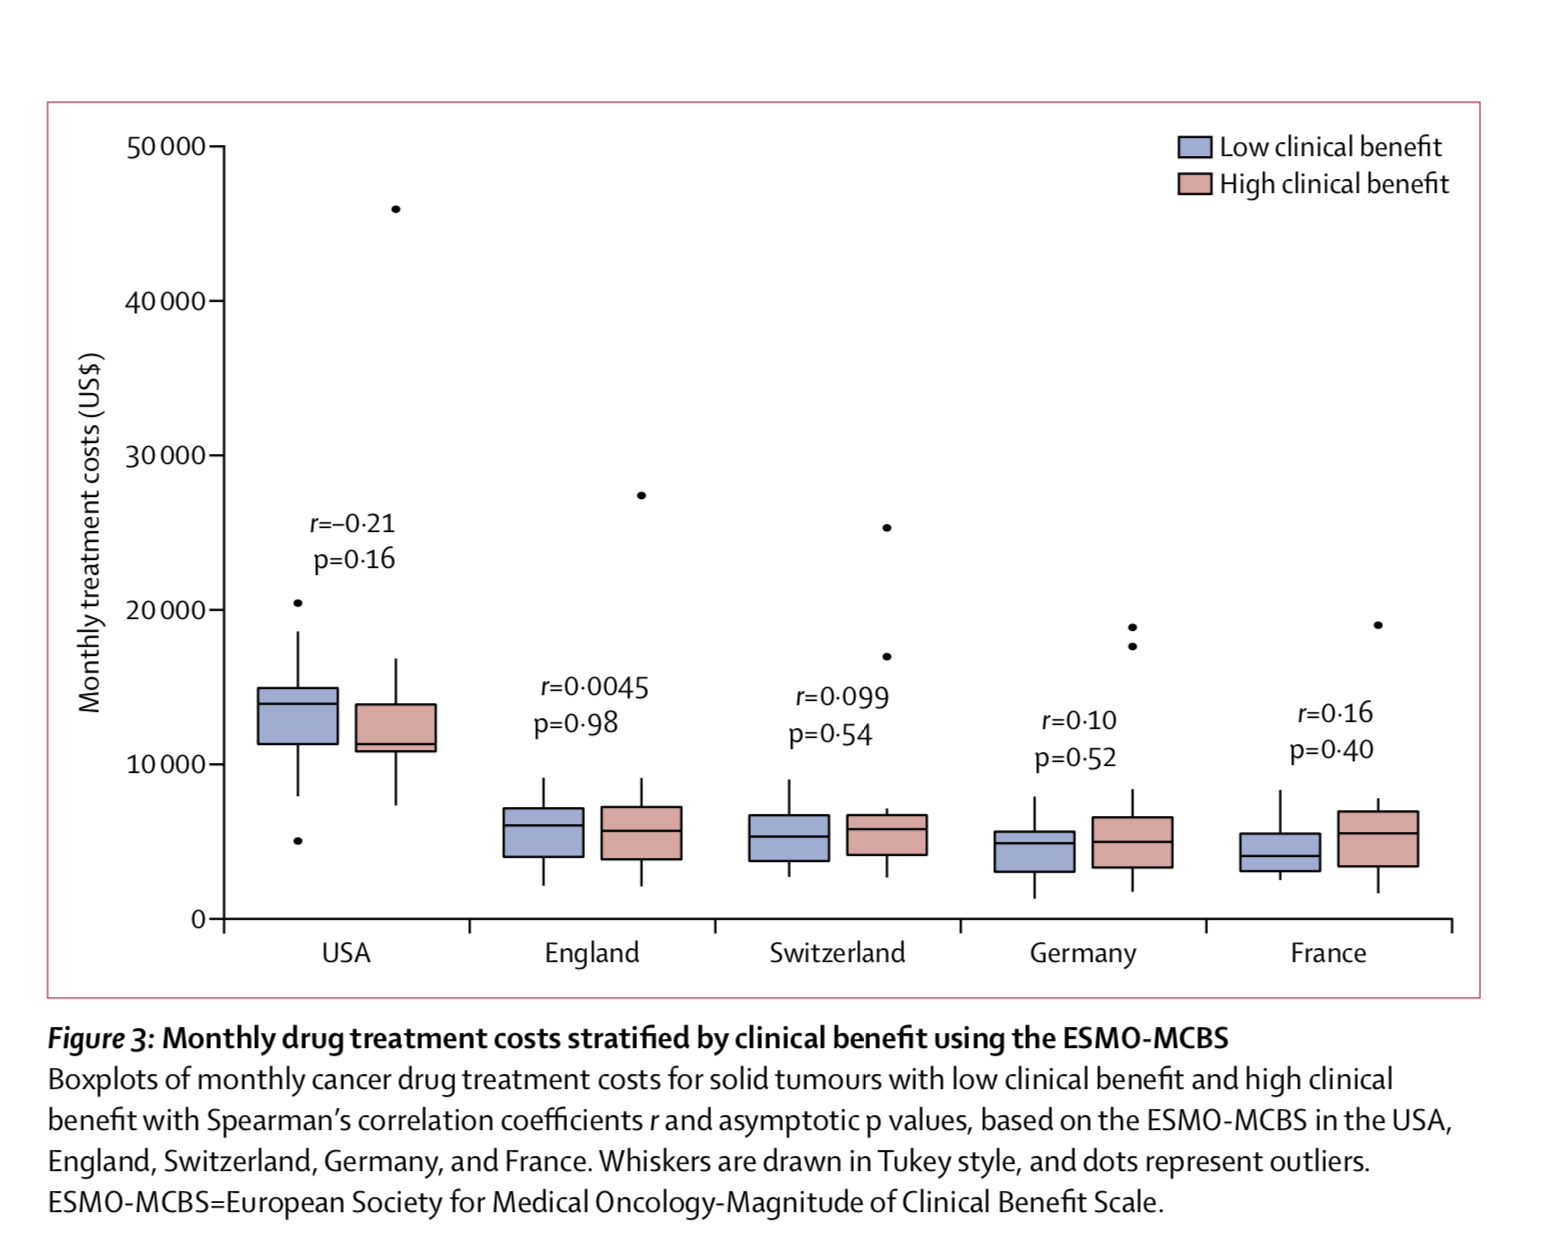 Cancer drugs, costs and clinical benefits are not aligned